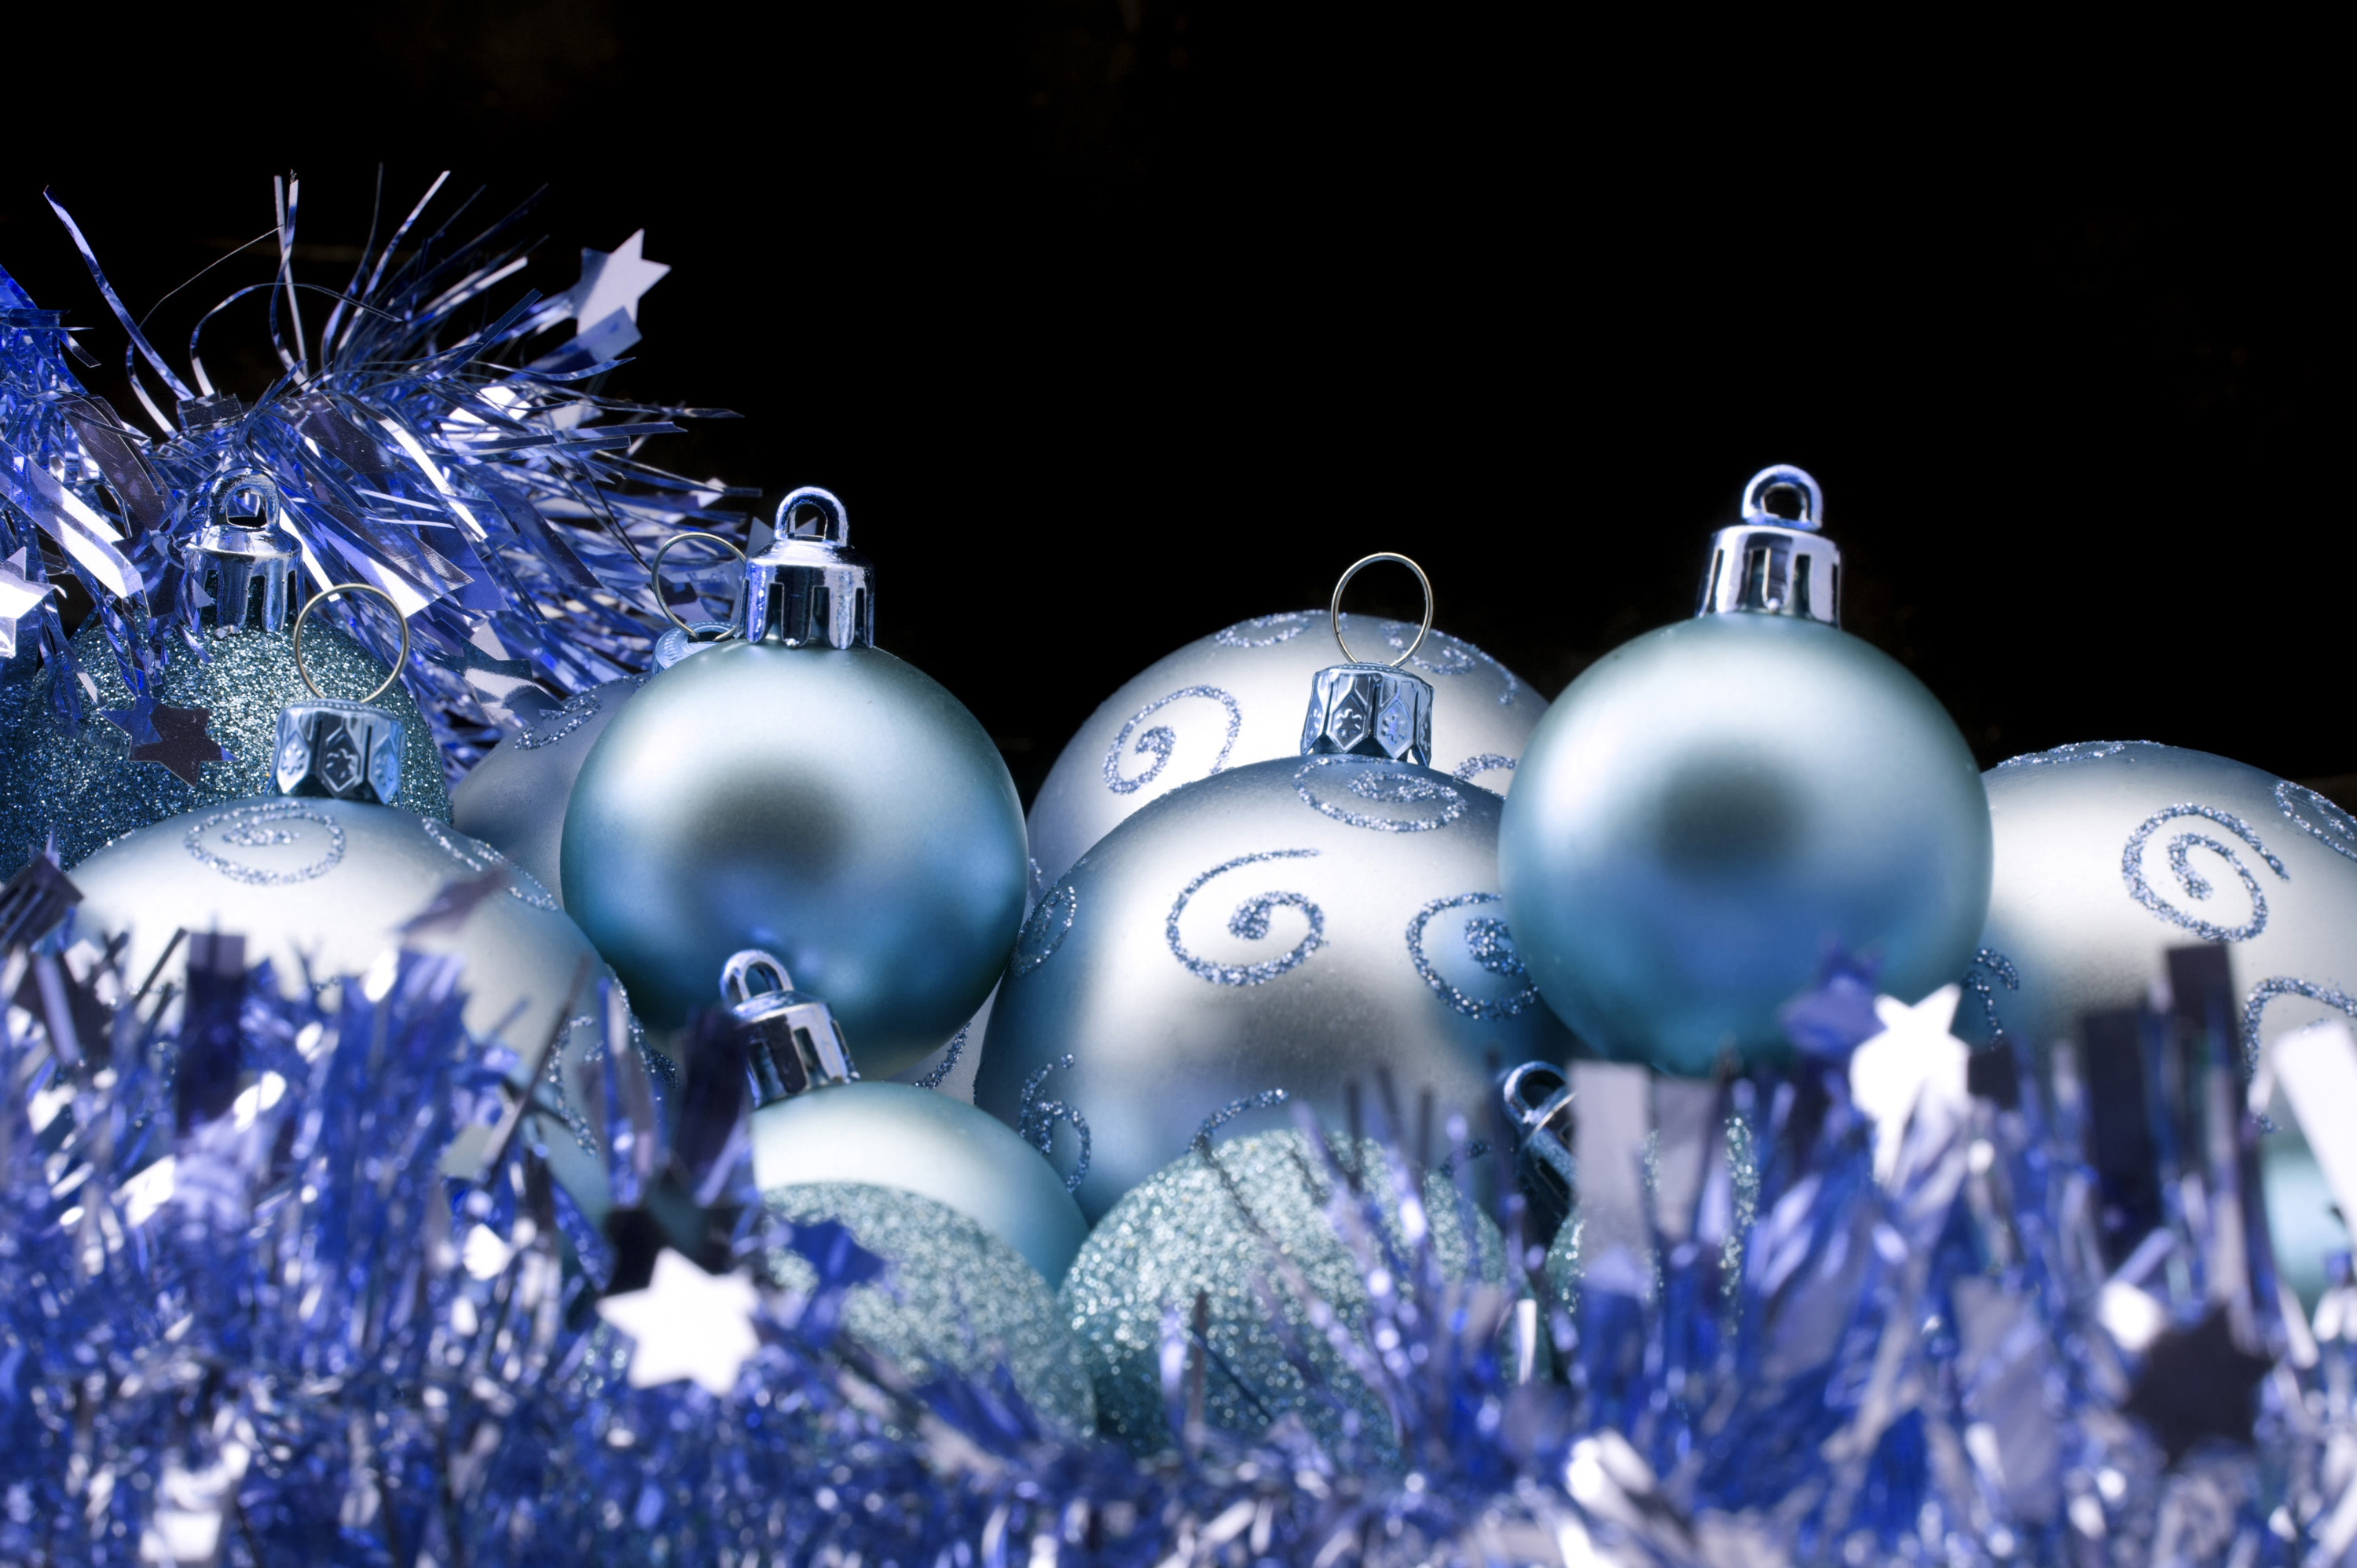 Blue Christmas tinsel and baubles on a black background with copyspace